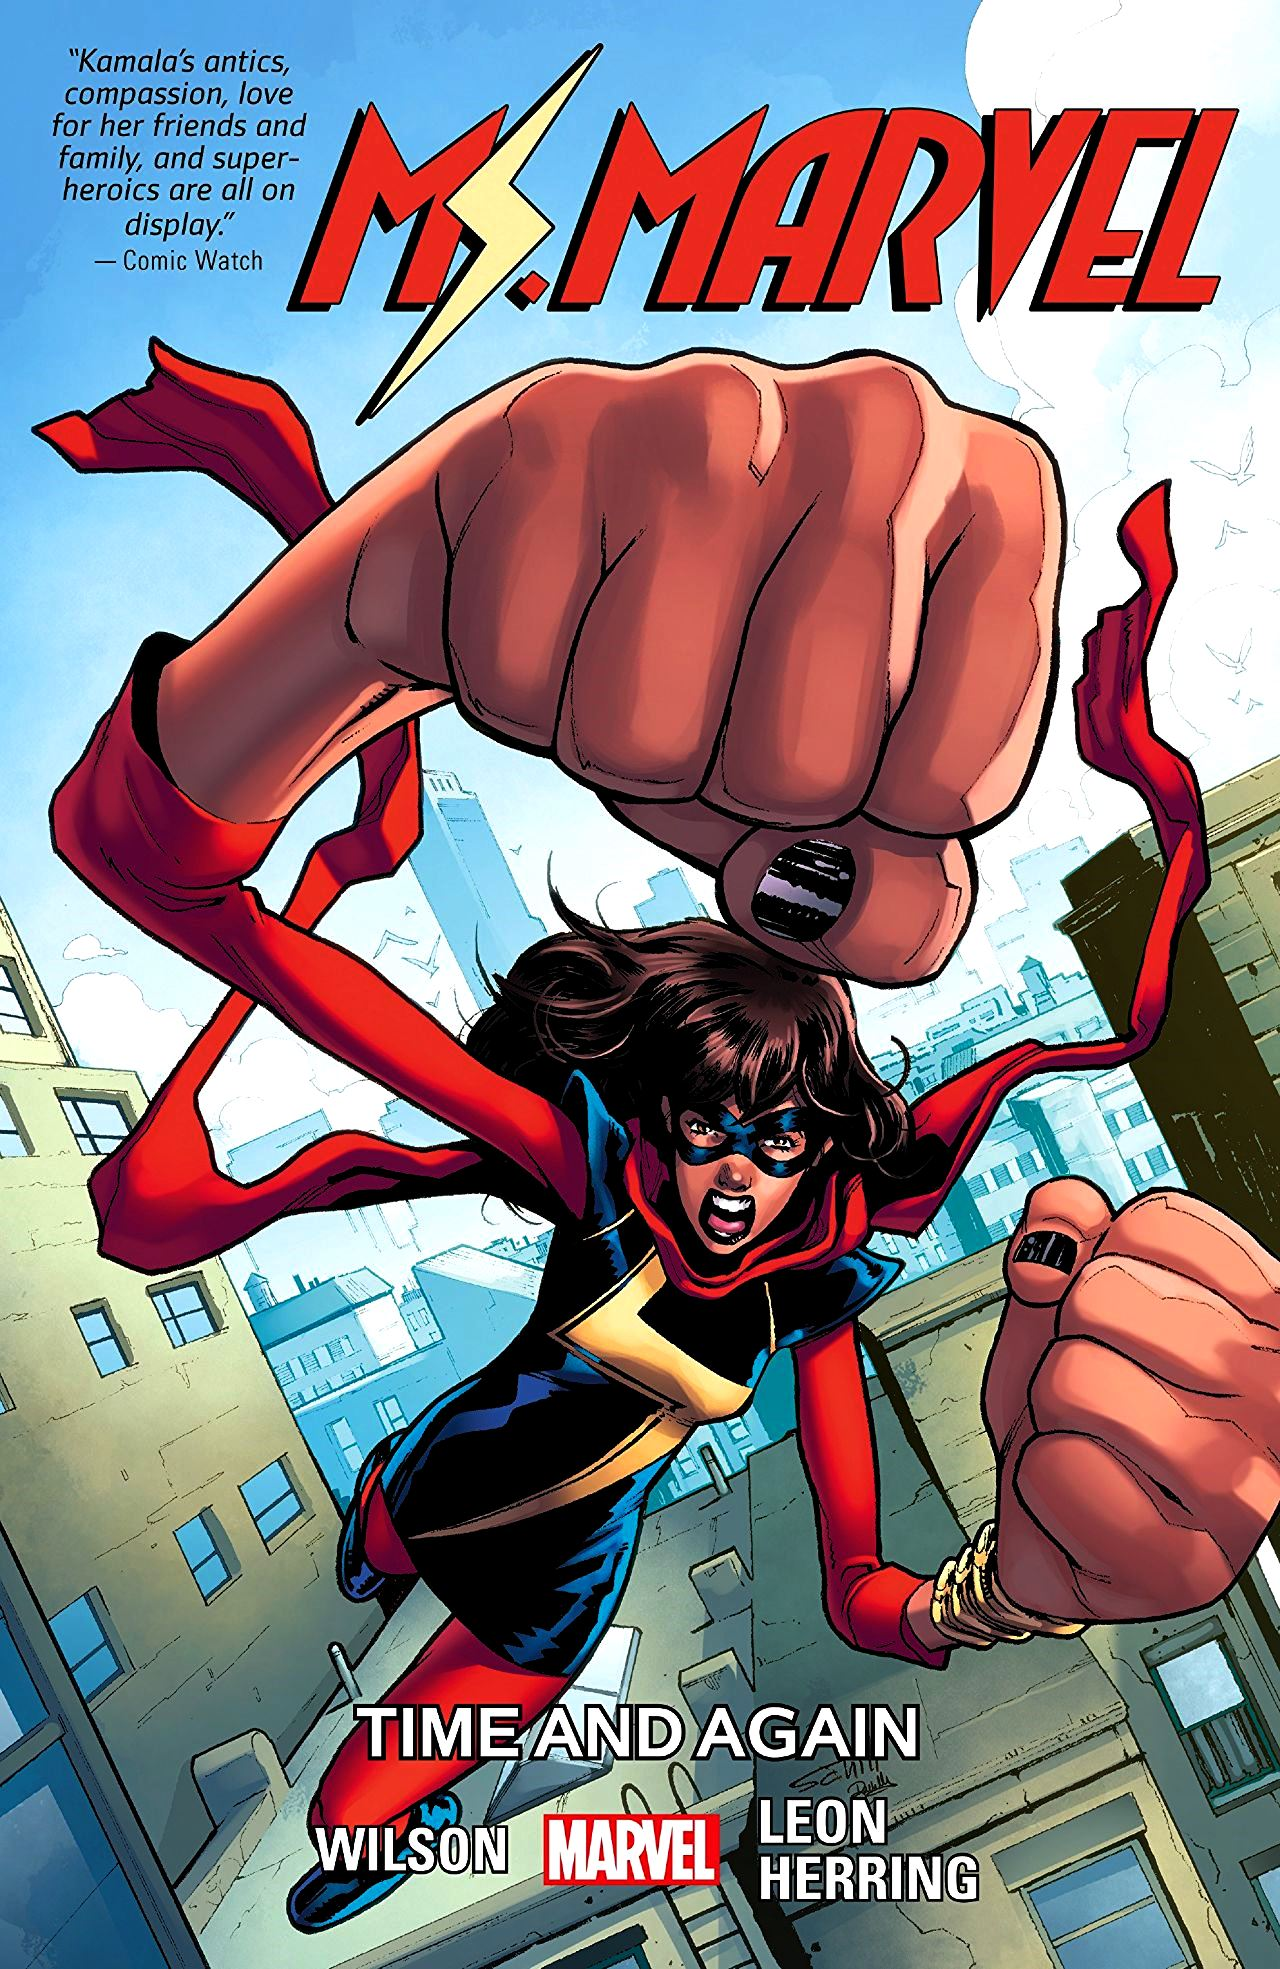 Ms Marvel (2015) Volume 10: Time and Again